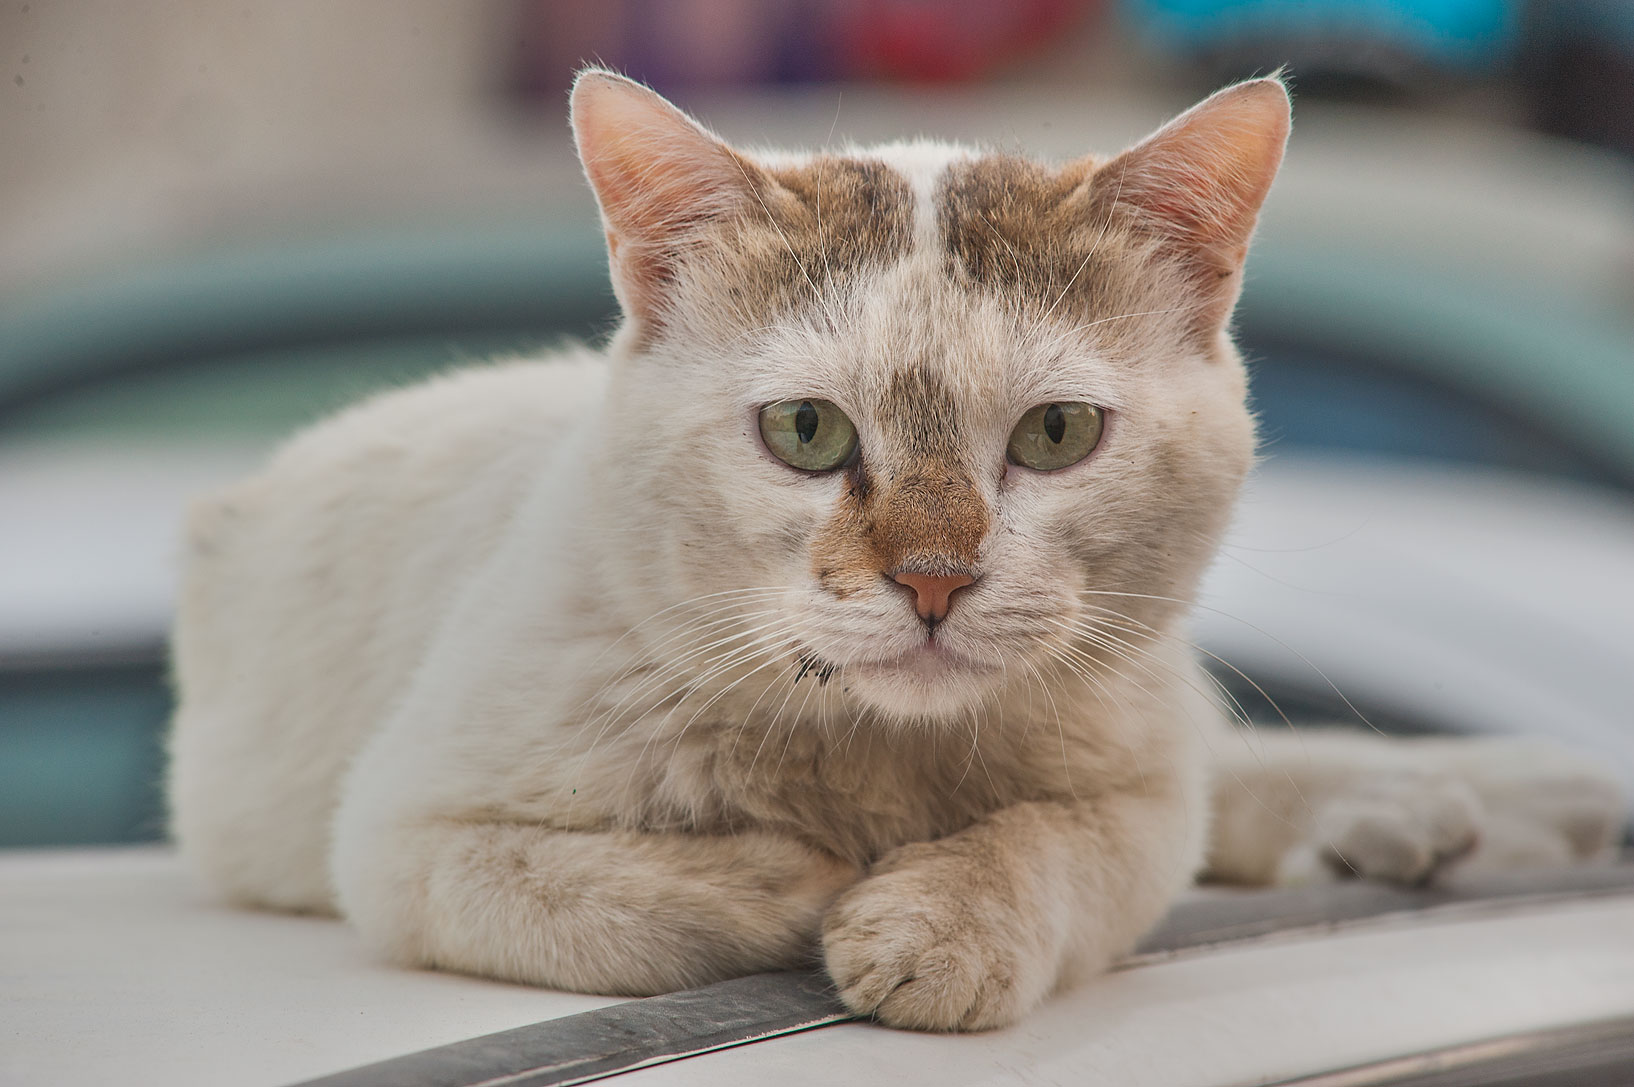 Whitish cat looking from a car on Umm Wishad St. in Musheirib area. Doha, Qatar